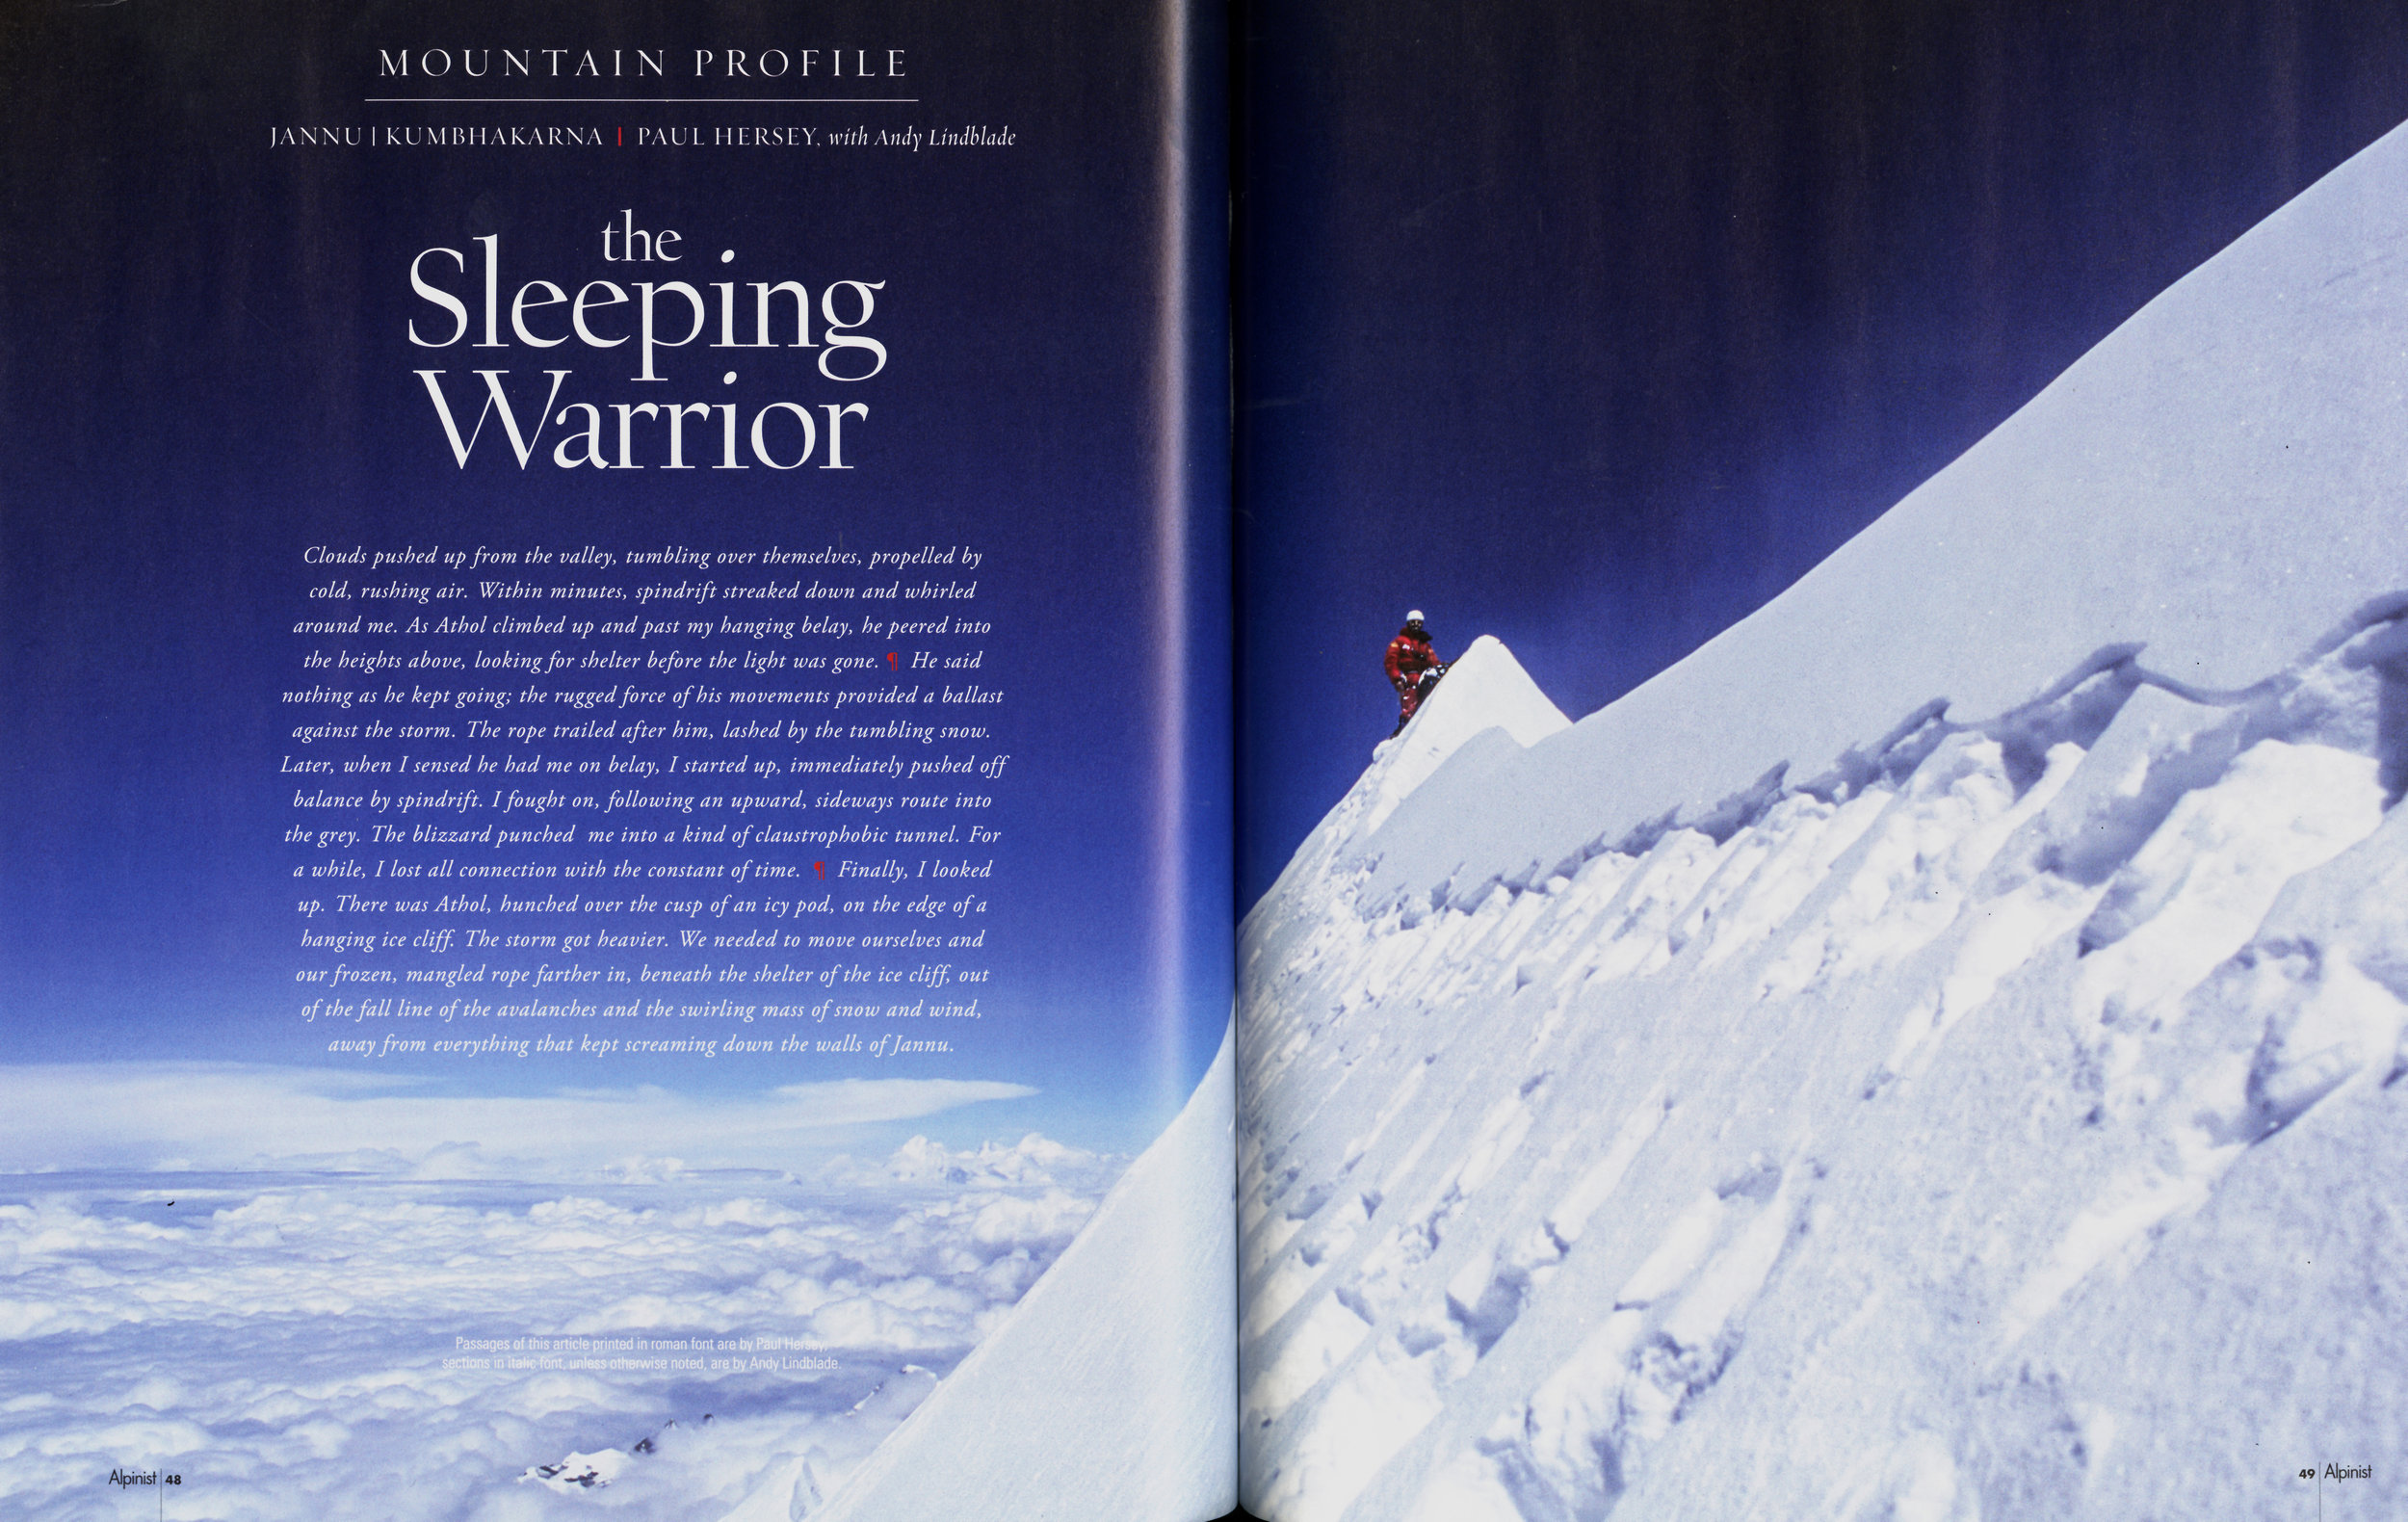 My photo of Athol on the summit of Jannu, from the opening spread from the Alpinist 57 profile on Jannu.